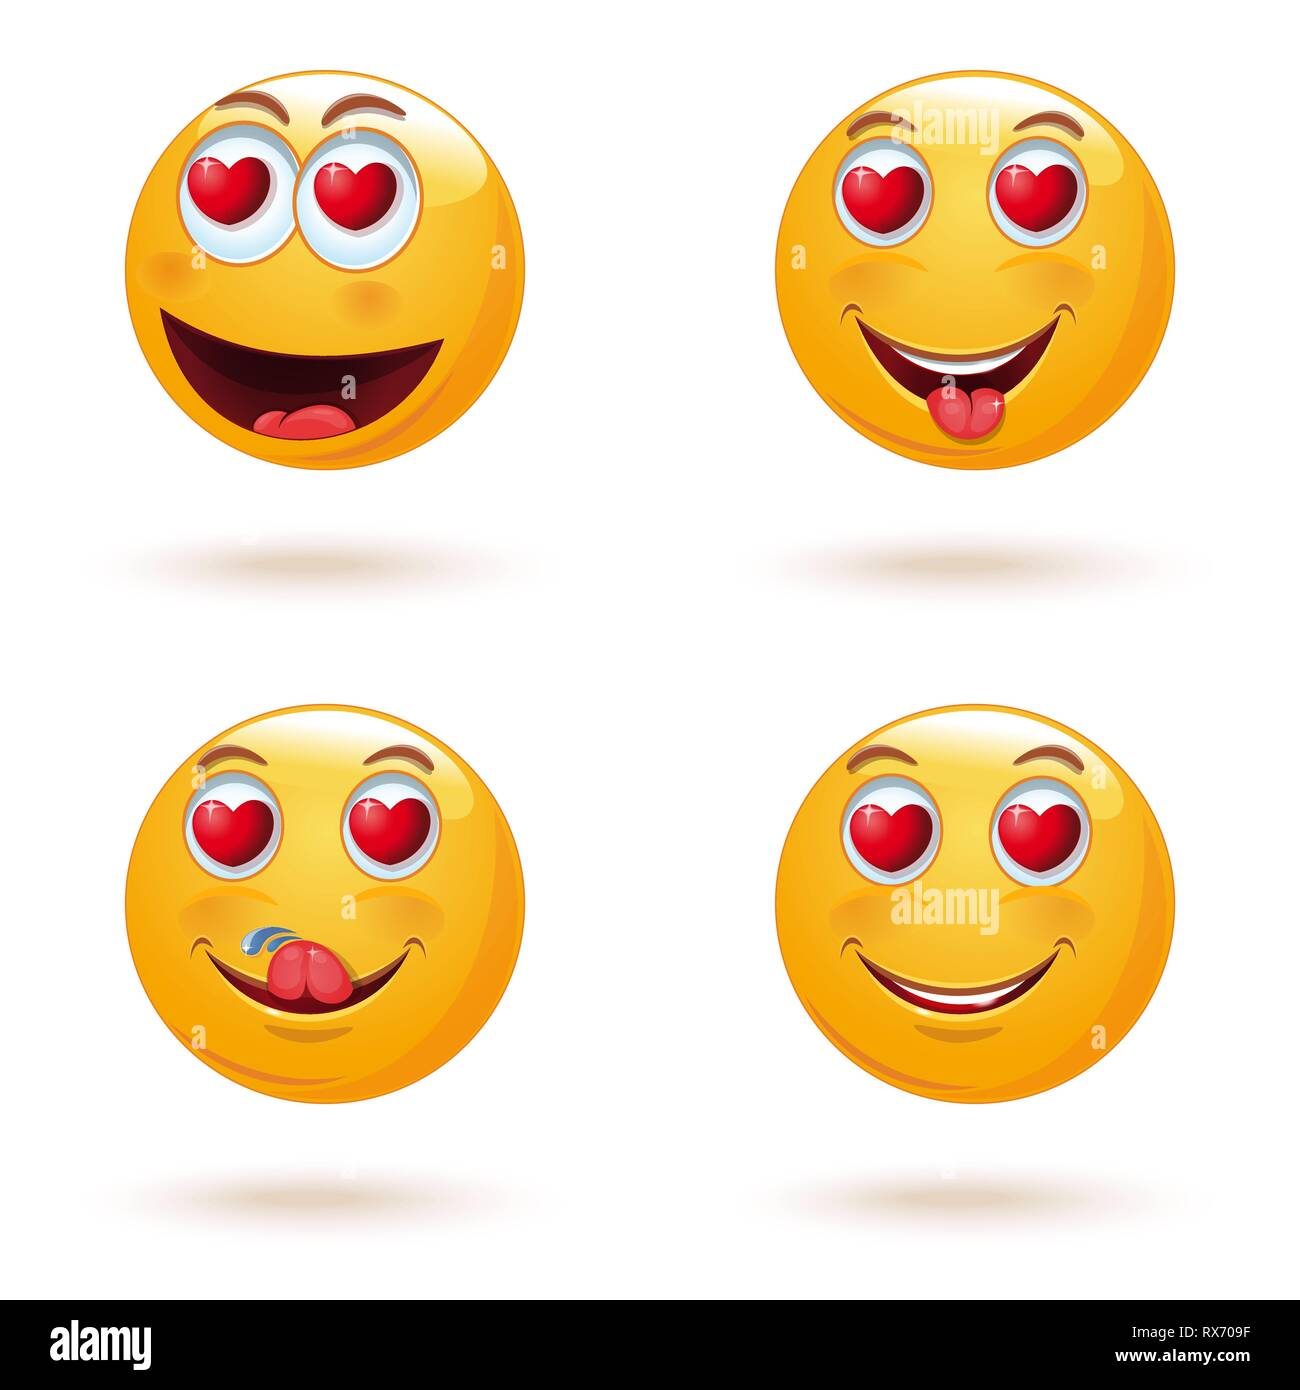 Emoticon face set with hearts instead of eyes - Stock Image